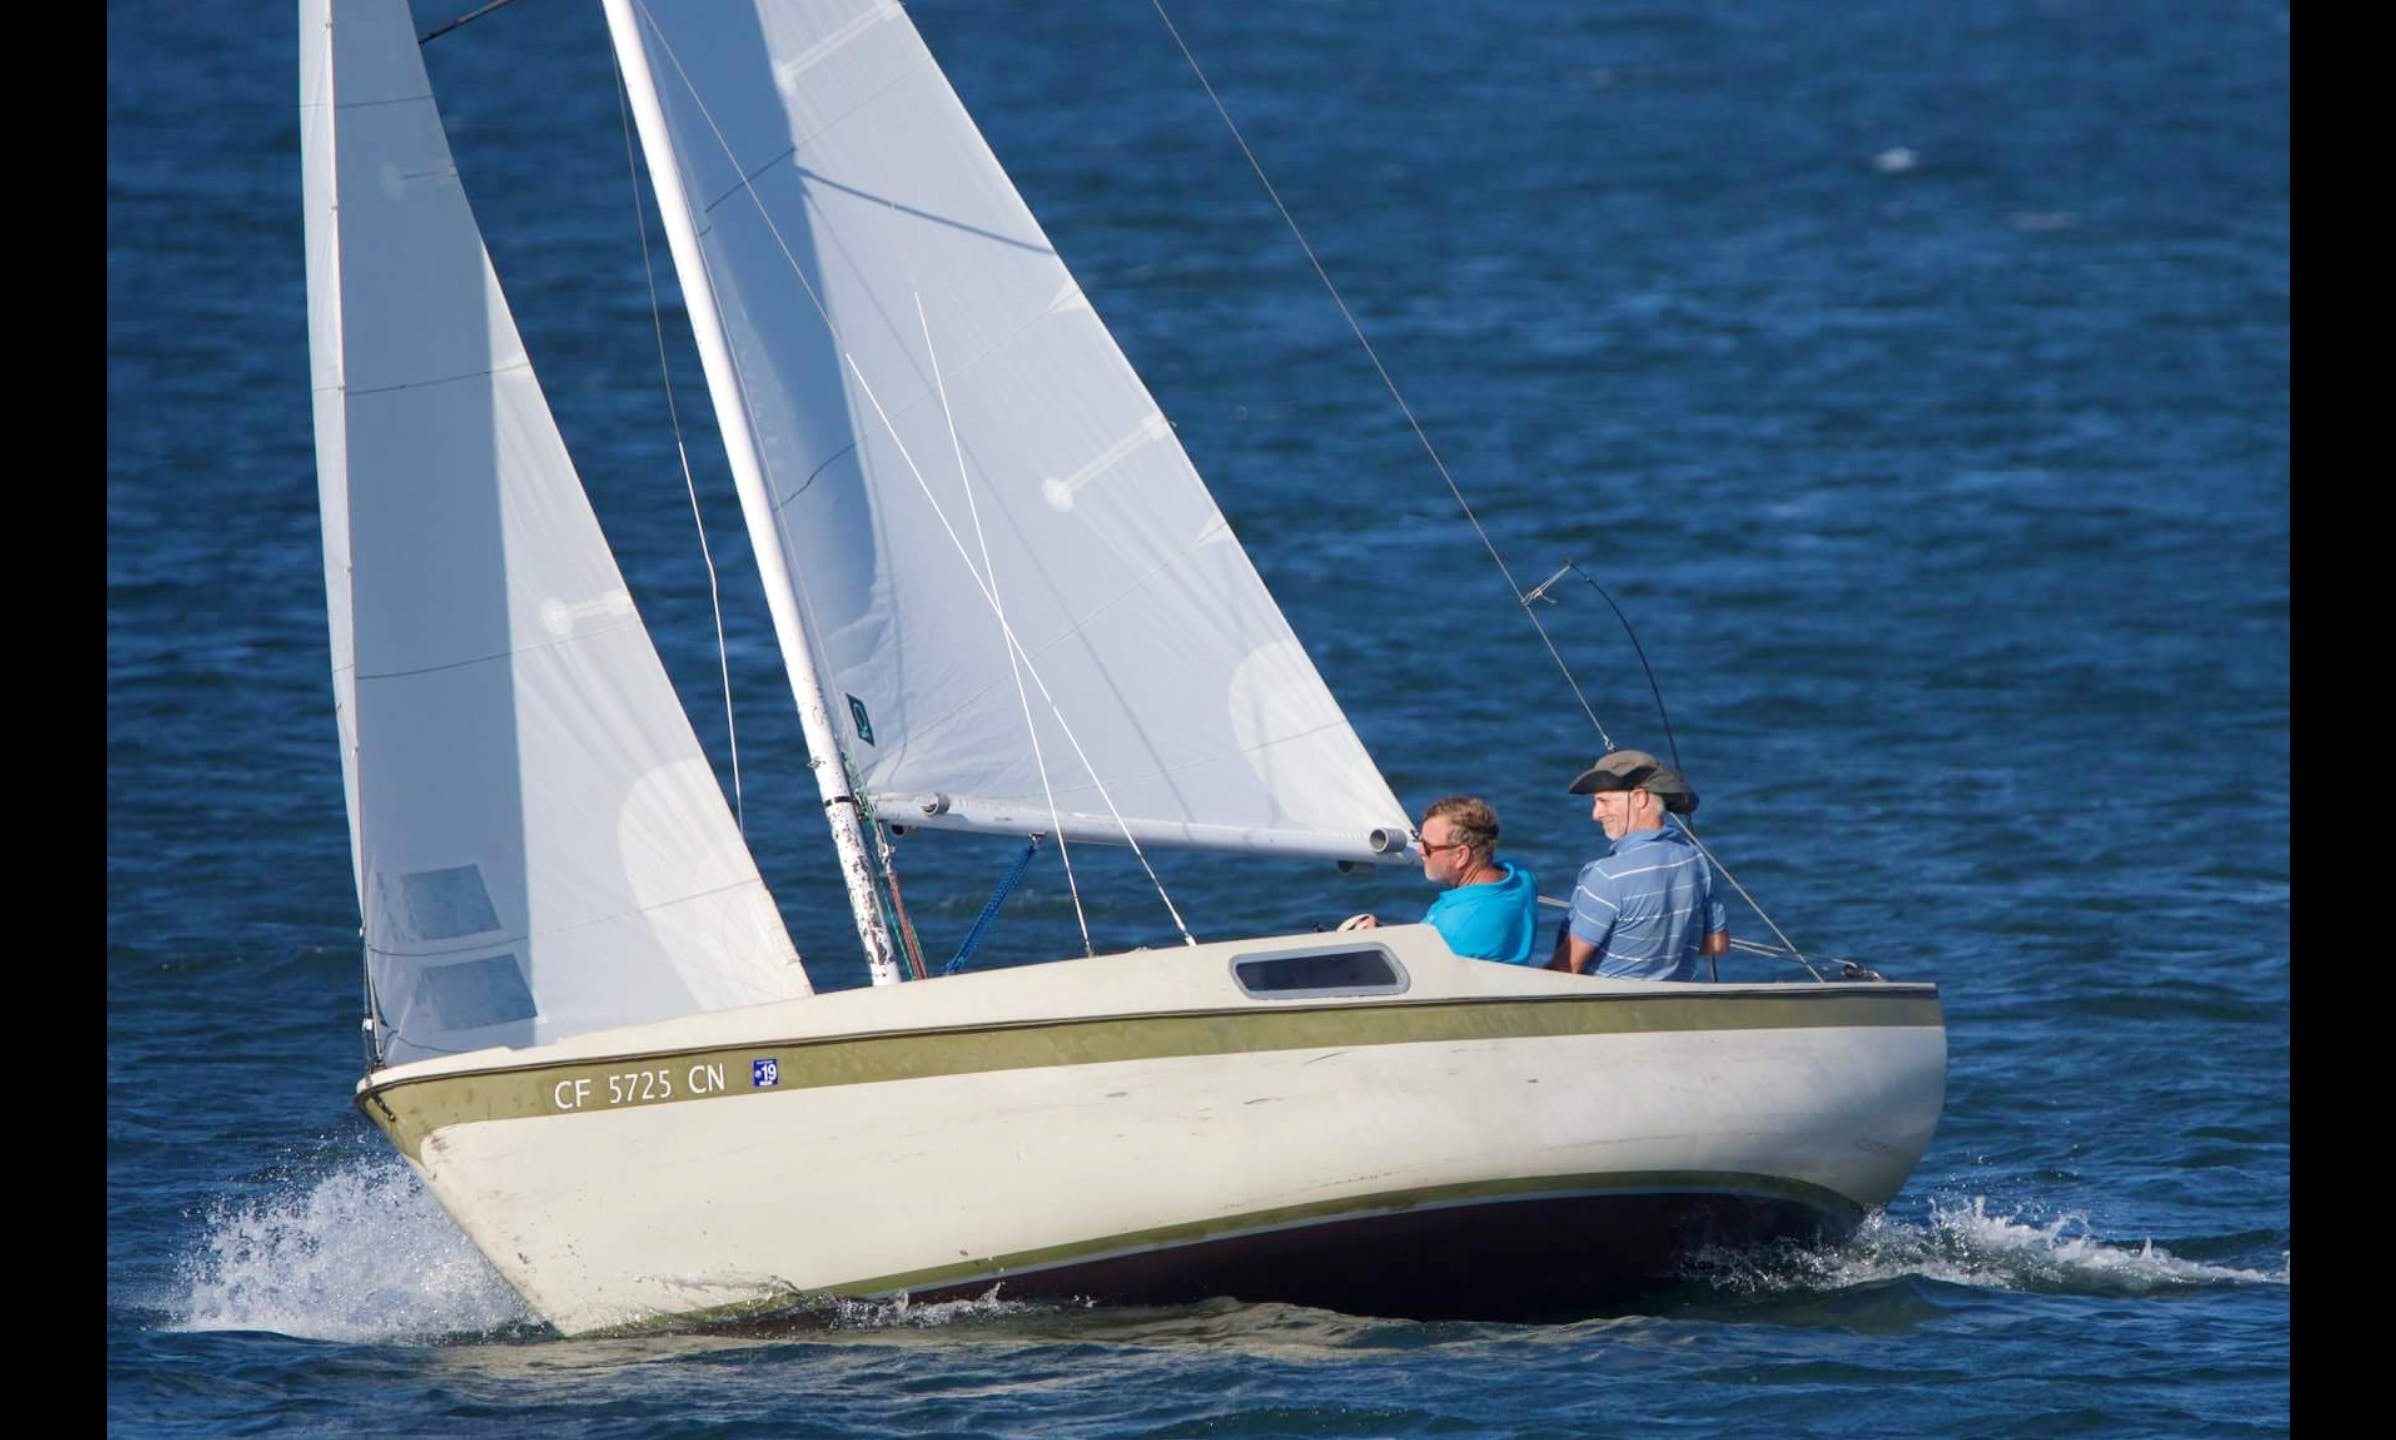 Daysailer rental in Long Beach